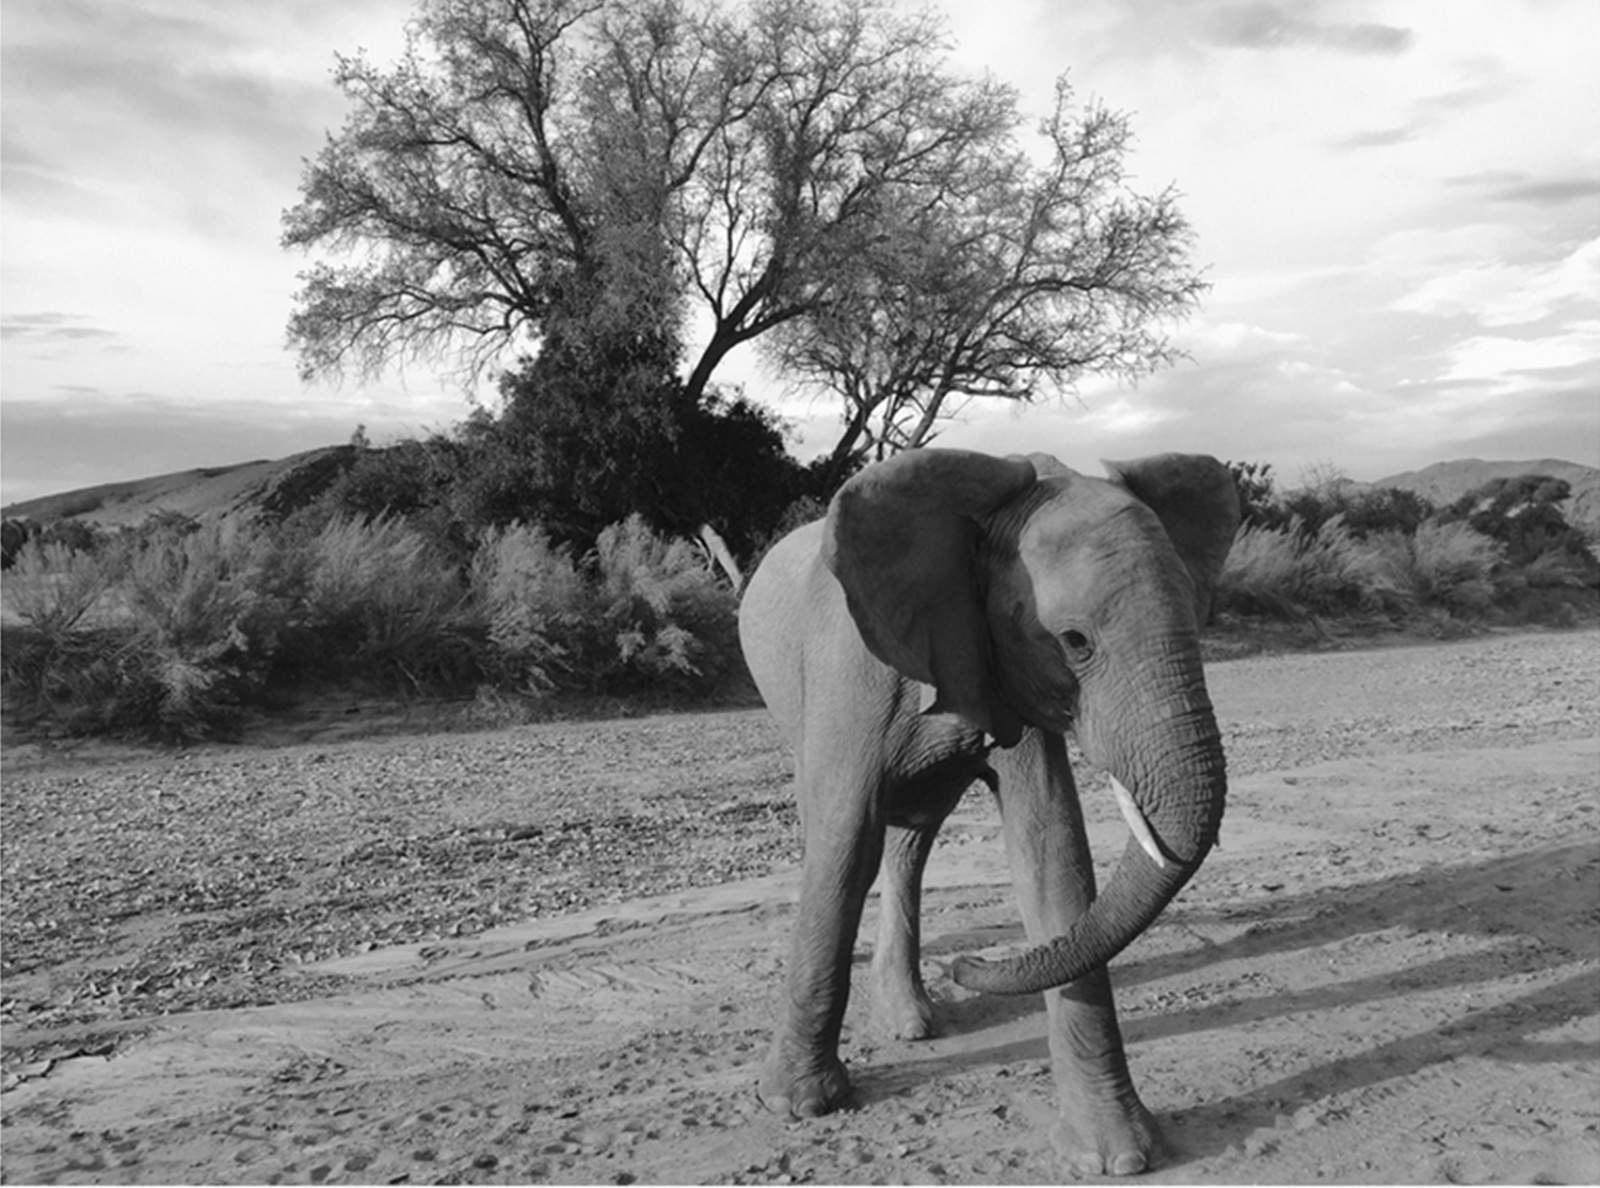 Jen Pollack Bianco captured this juvenile elephant charging her safari vehicle on the iPhone 6.